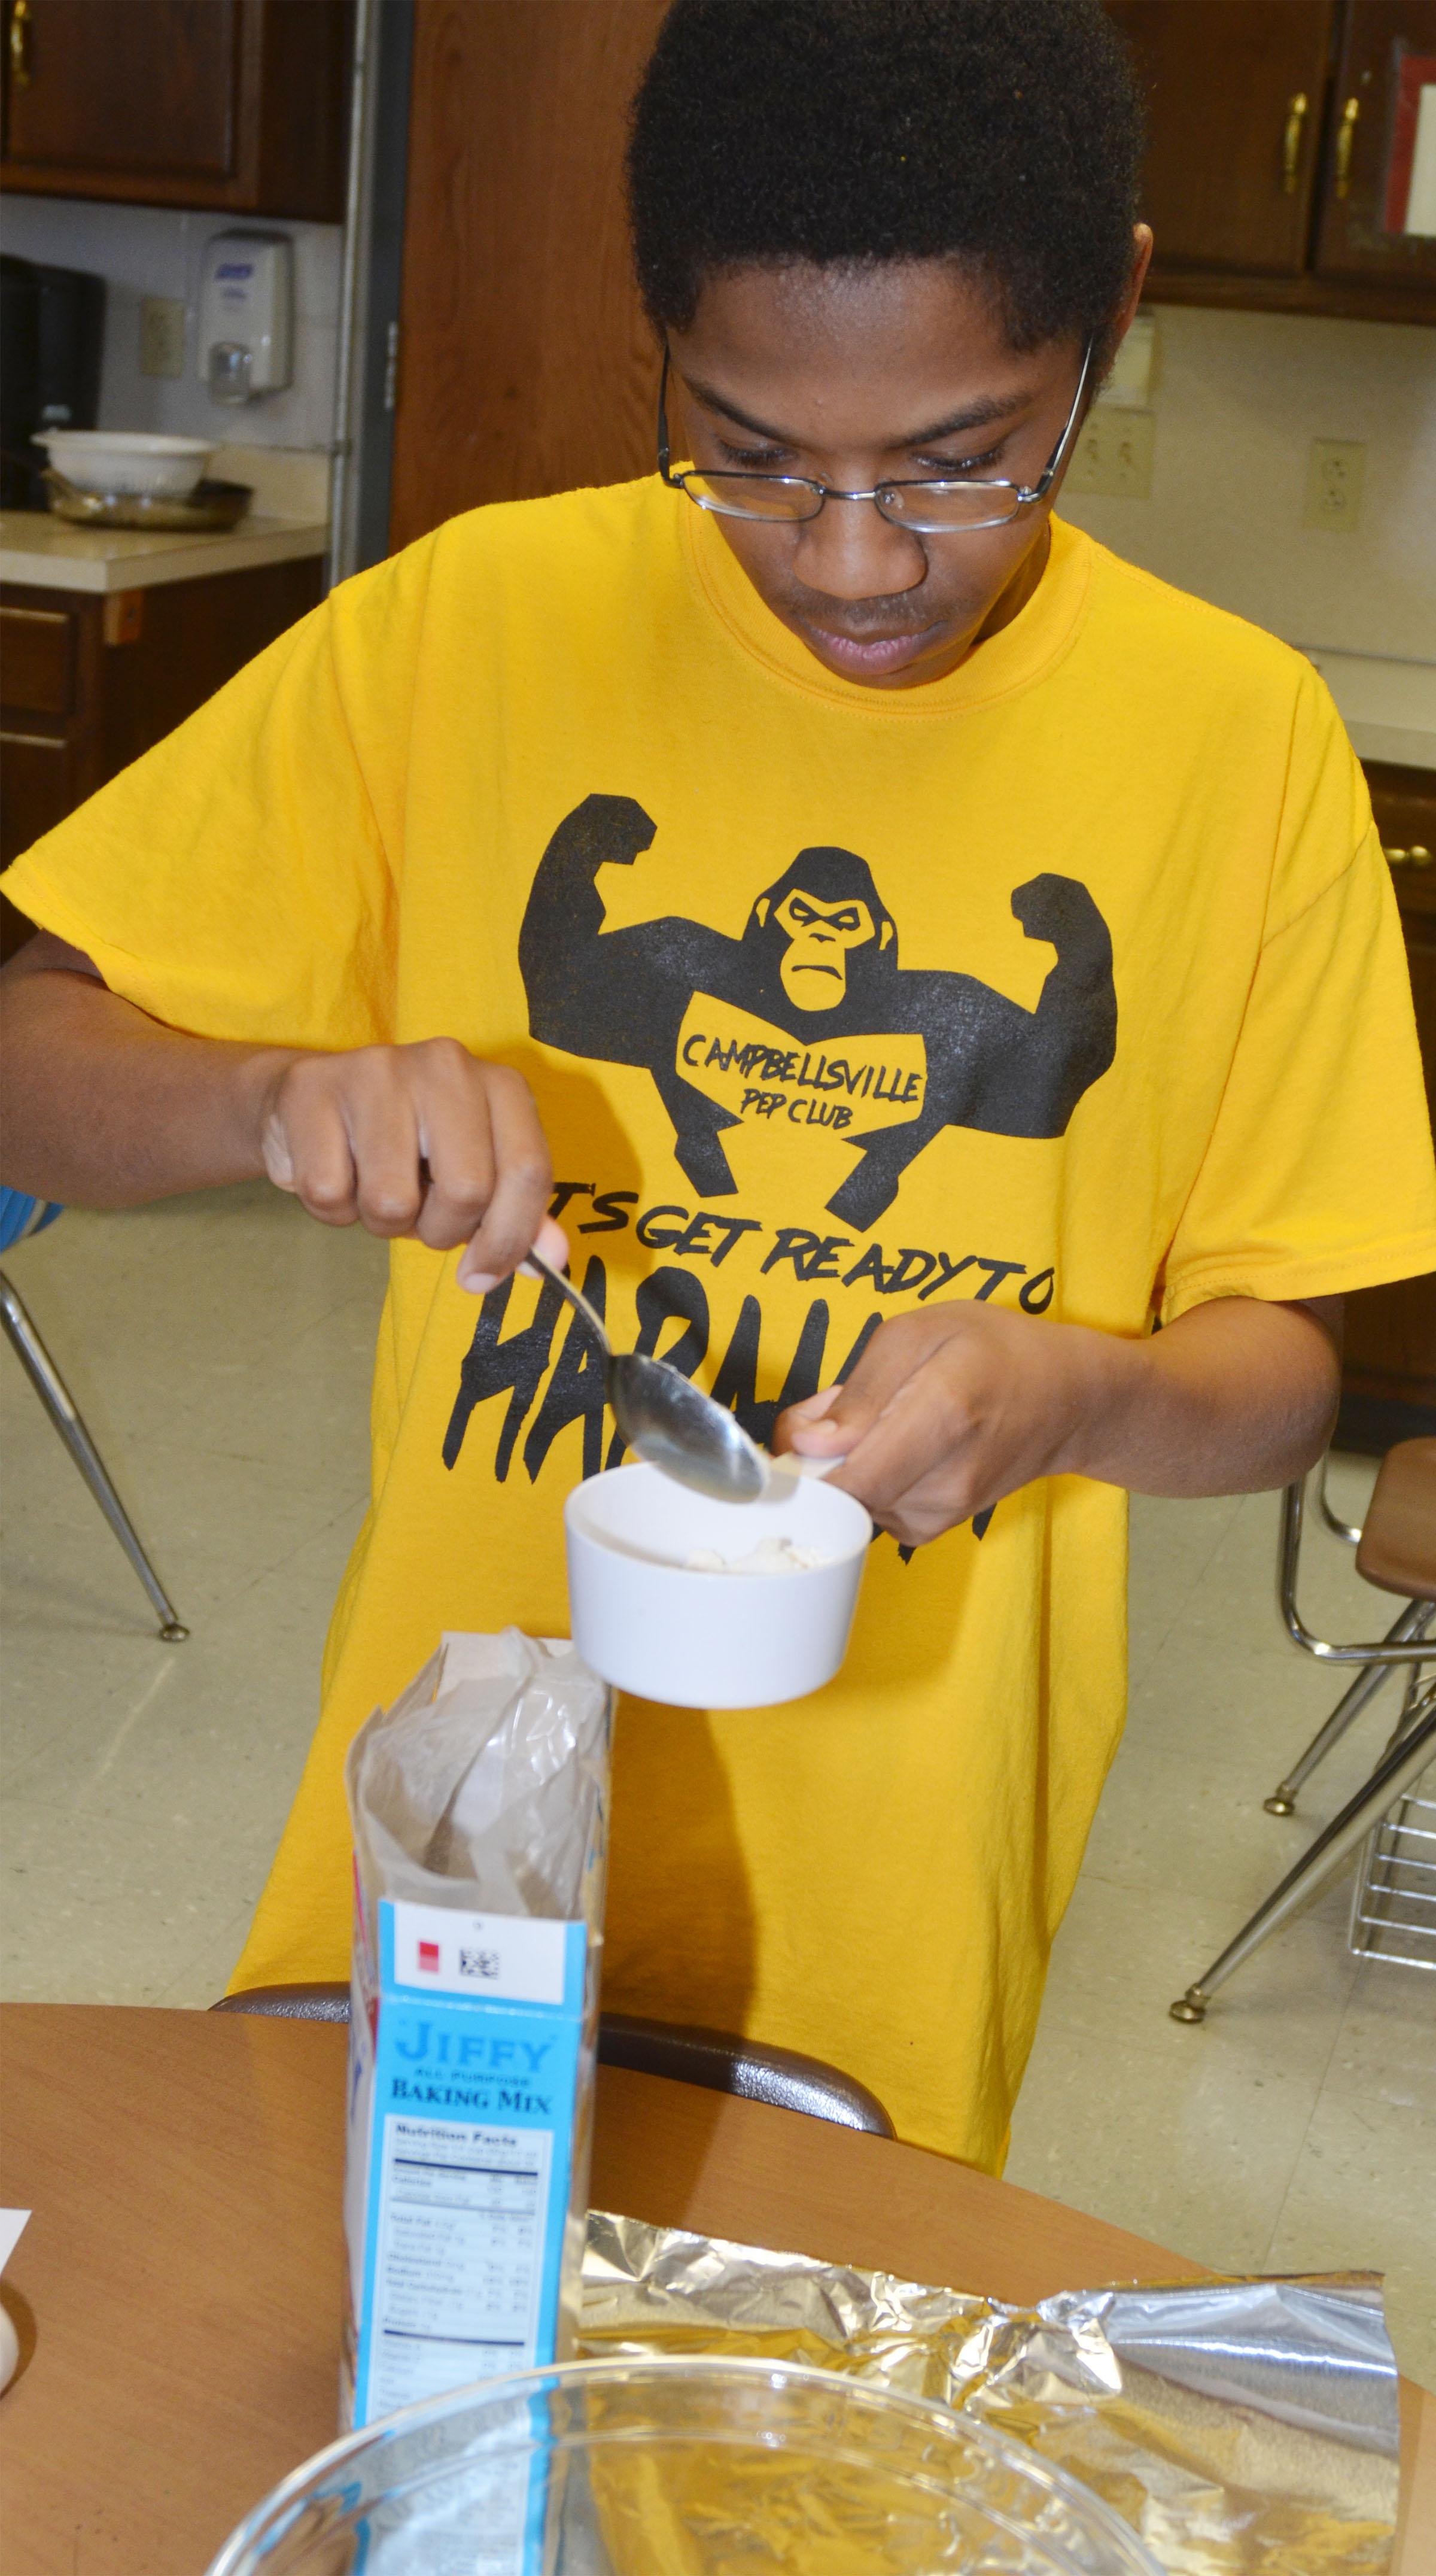 CHS sophomore Travis Nash measures baking mix to make cheesy garlic biscuits.